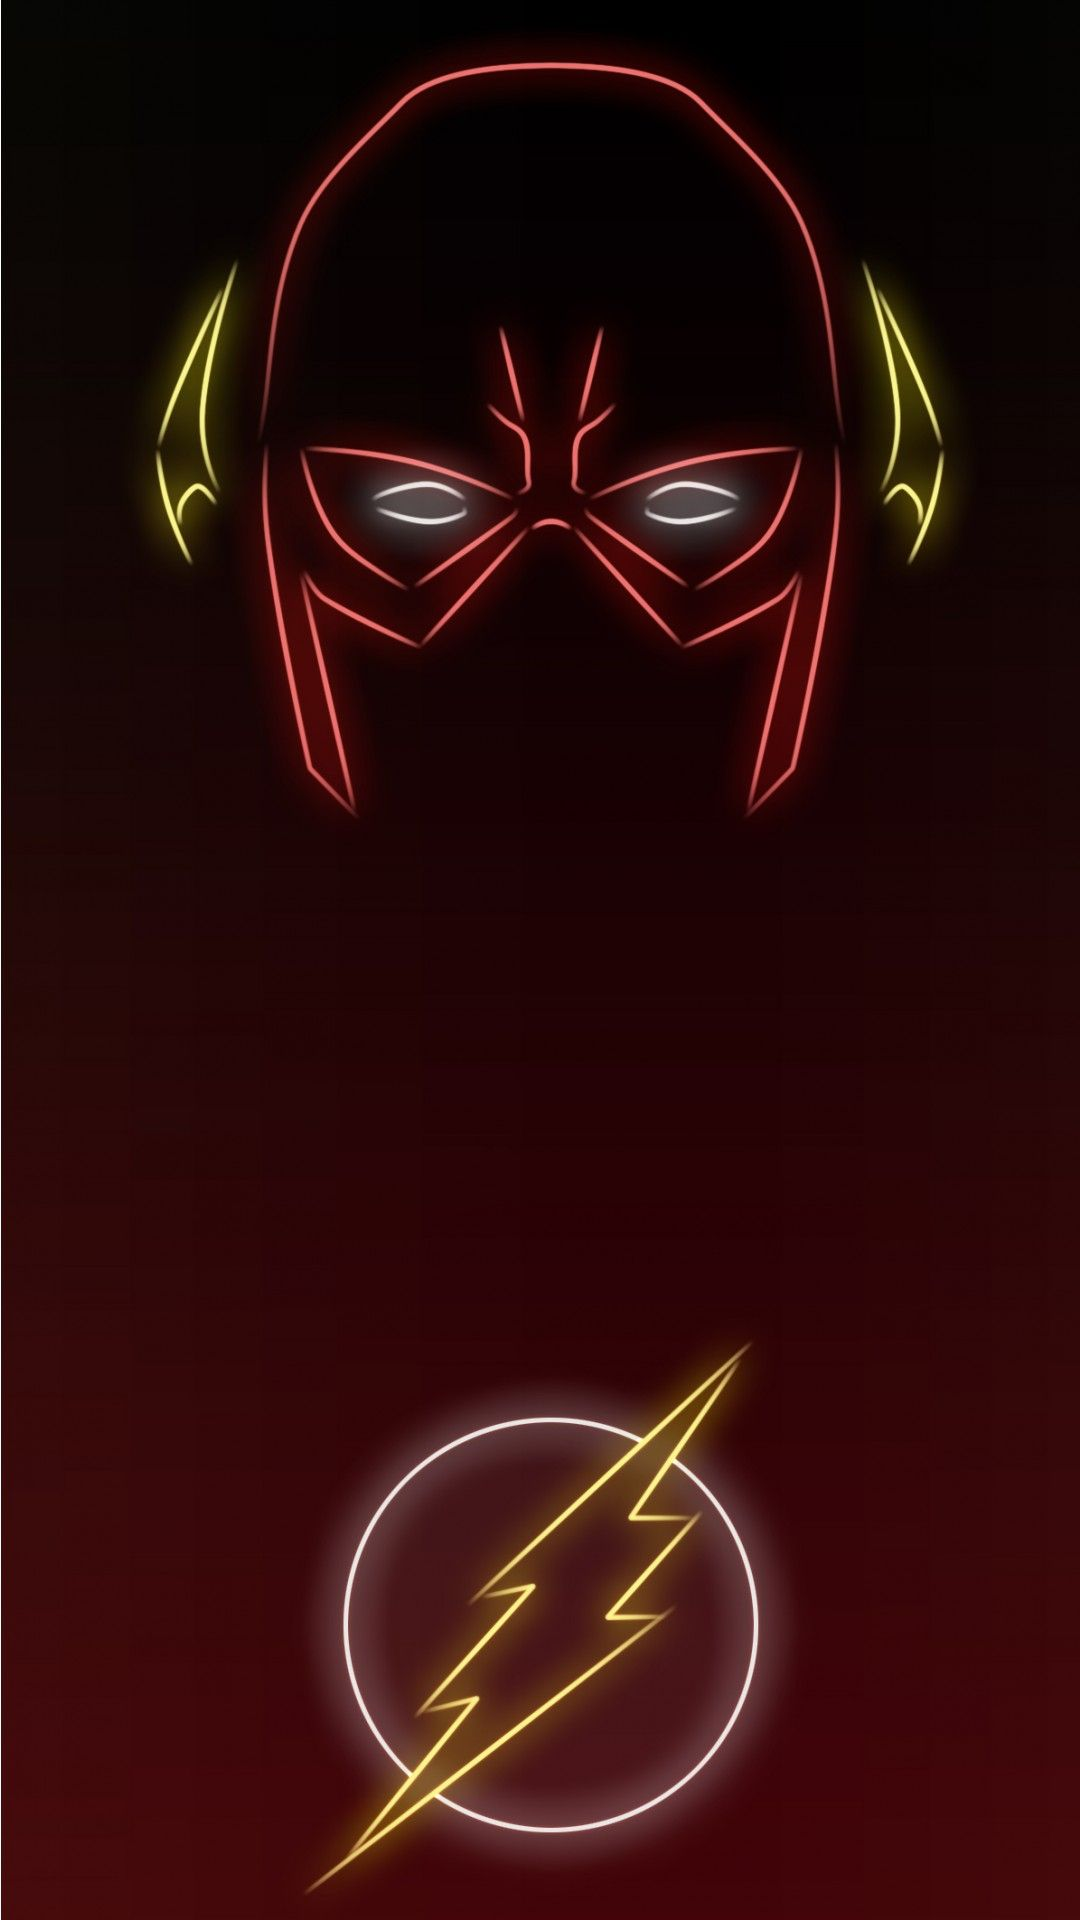 neon light the flash wallpapers 1080 x 1920 wallpapers available for